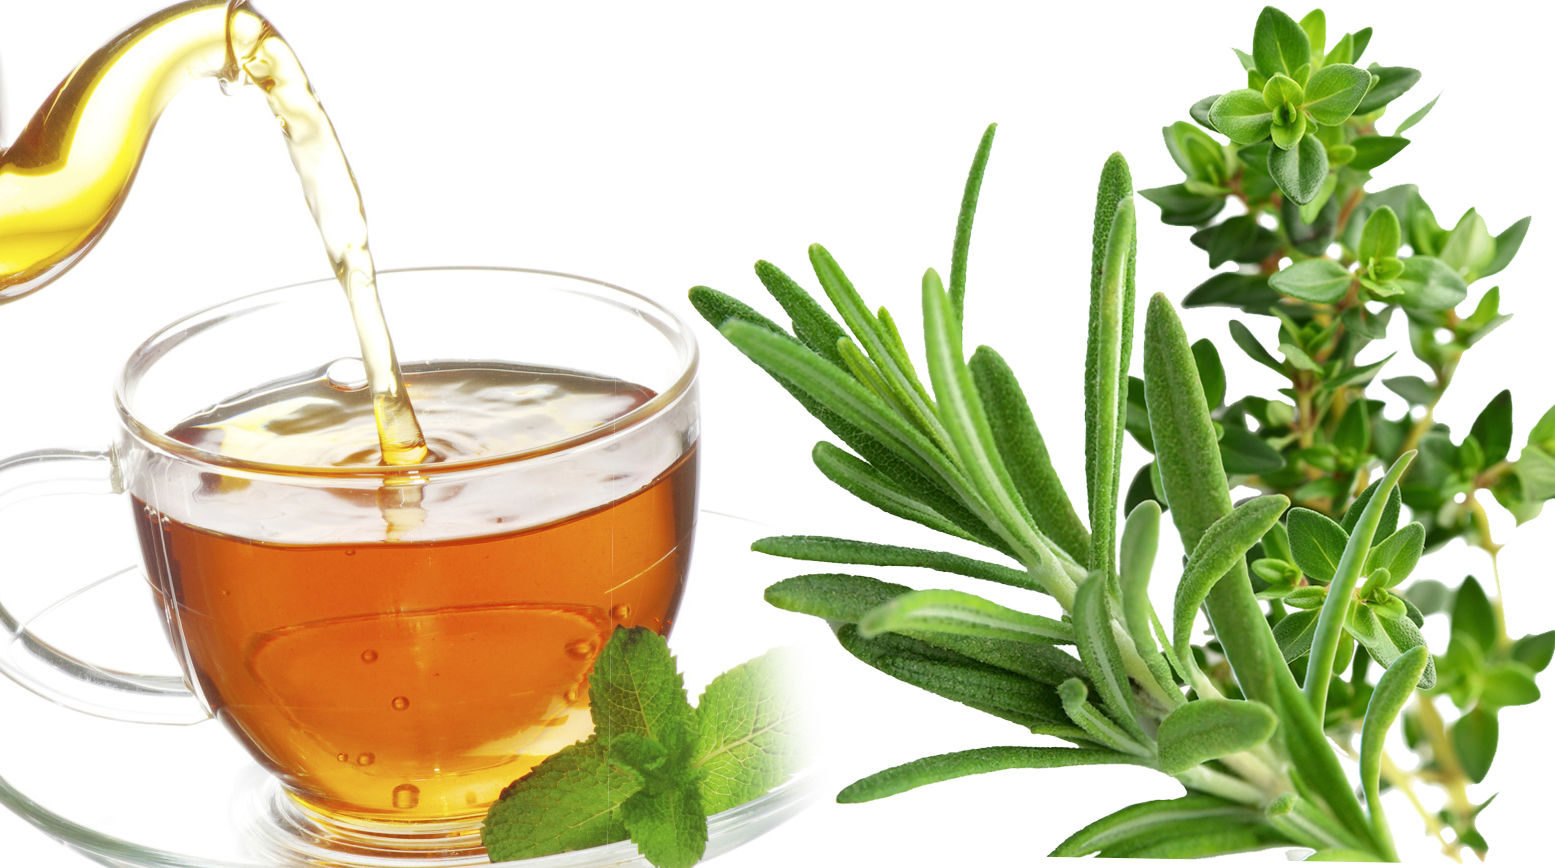 5.1-Boost-your-Consentration-and-Memory-with-Rosemary-Thyme-Tea.jpg CAROL